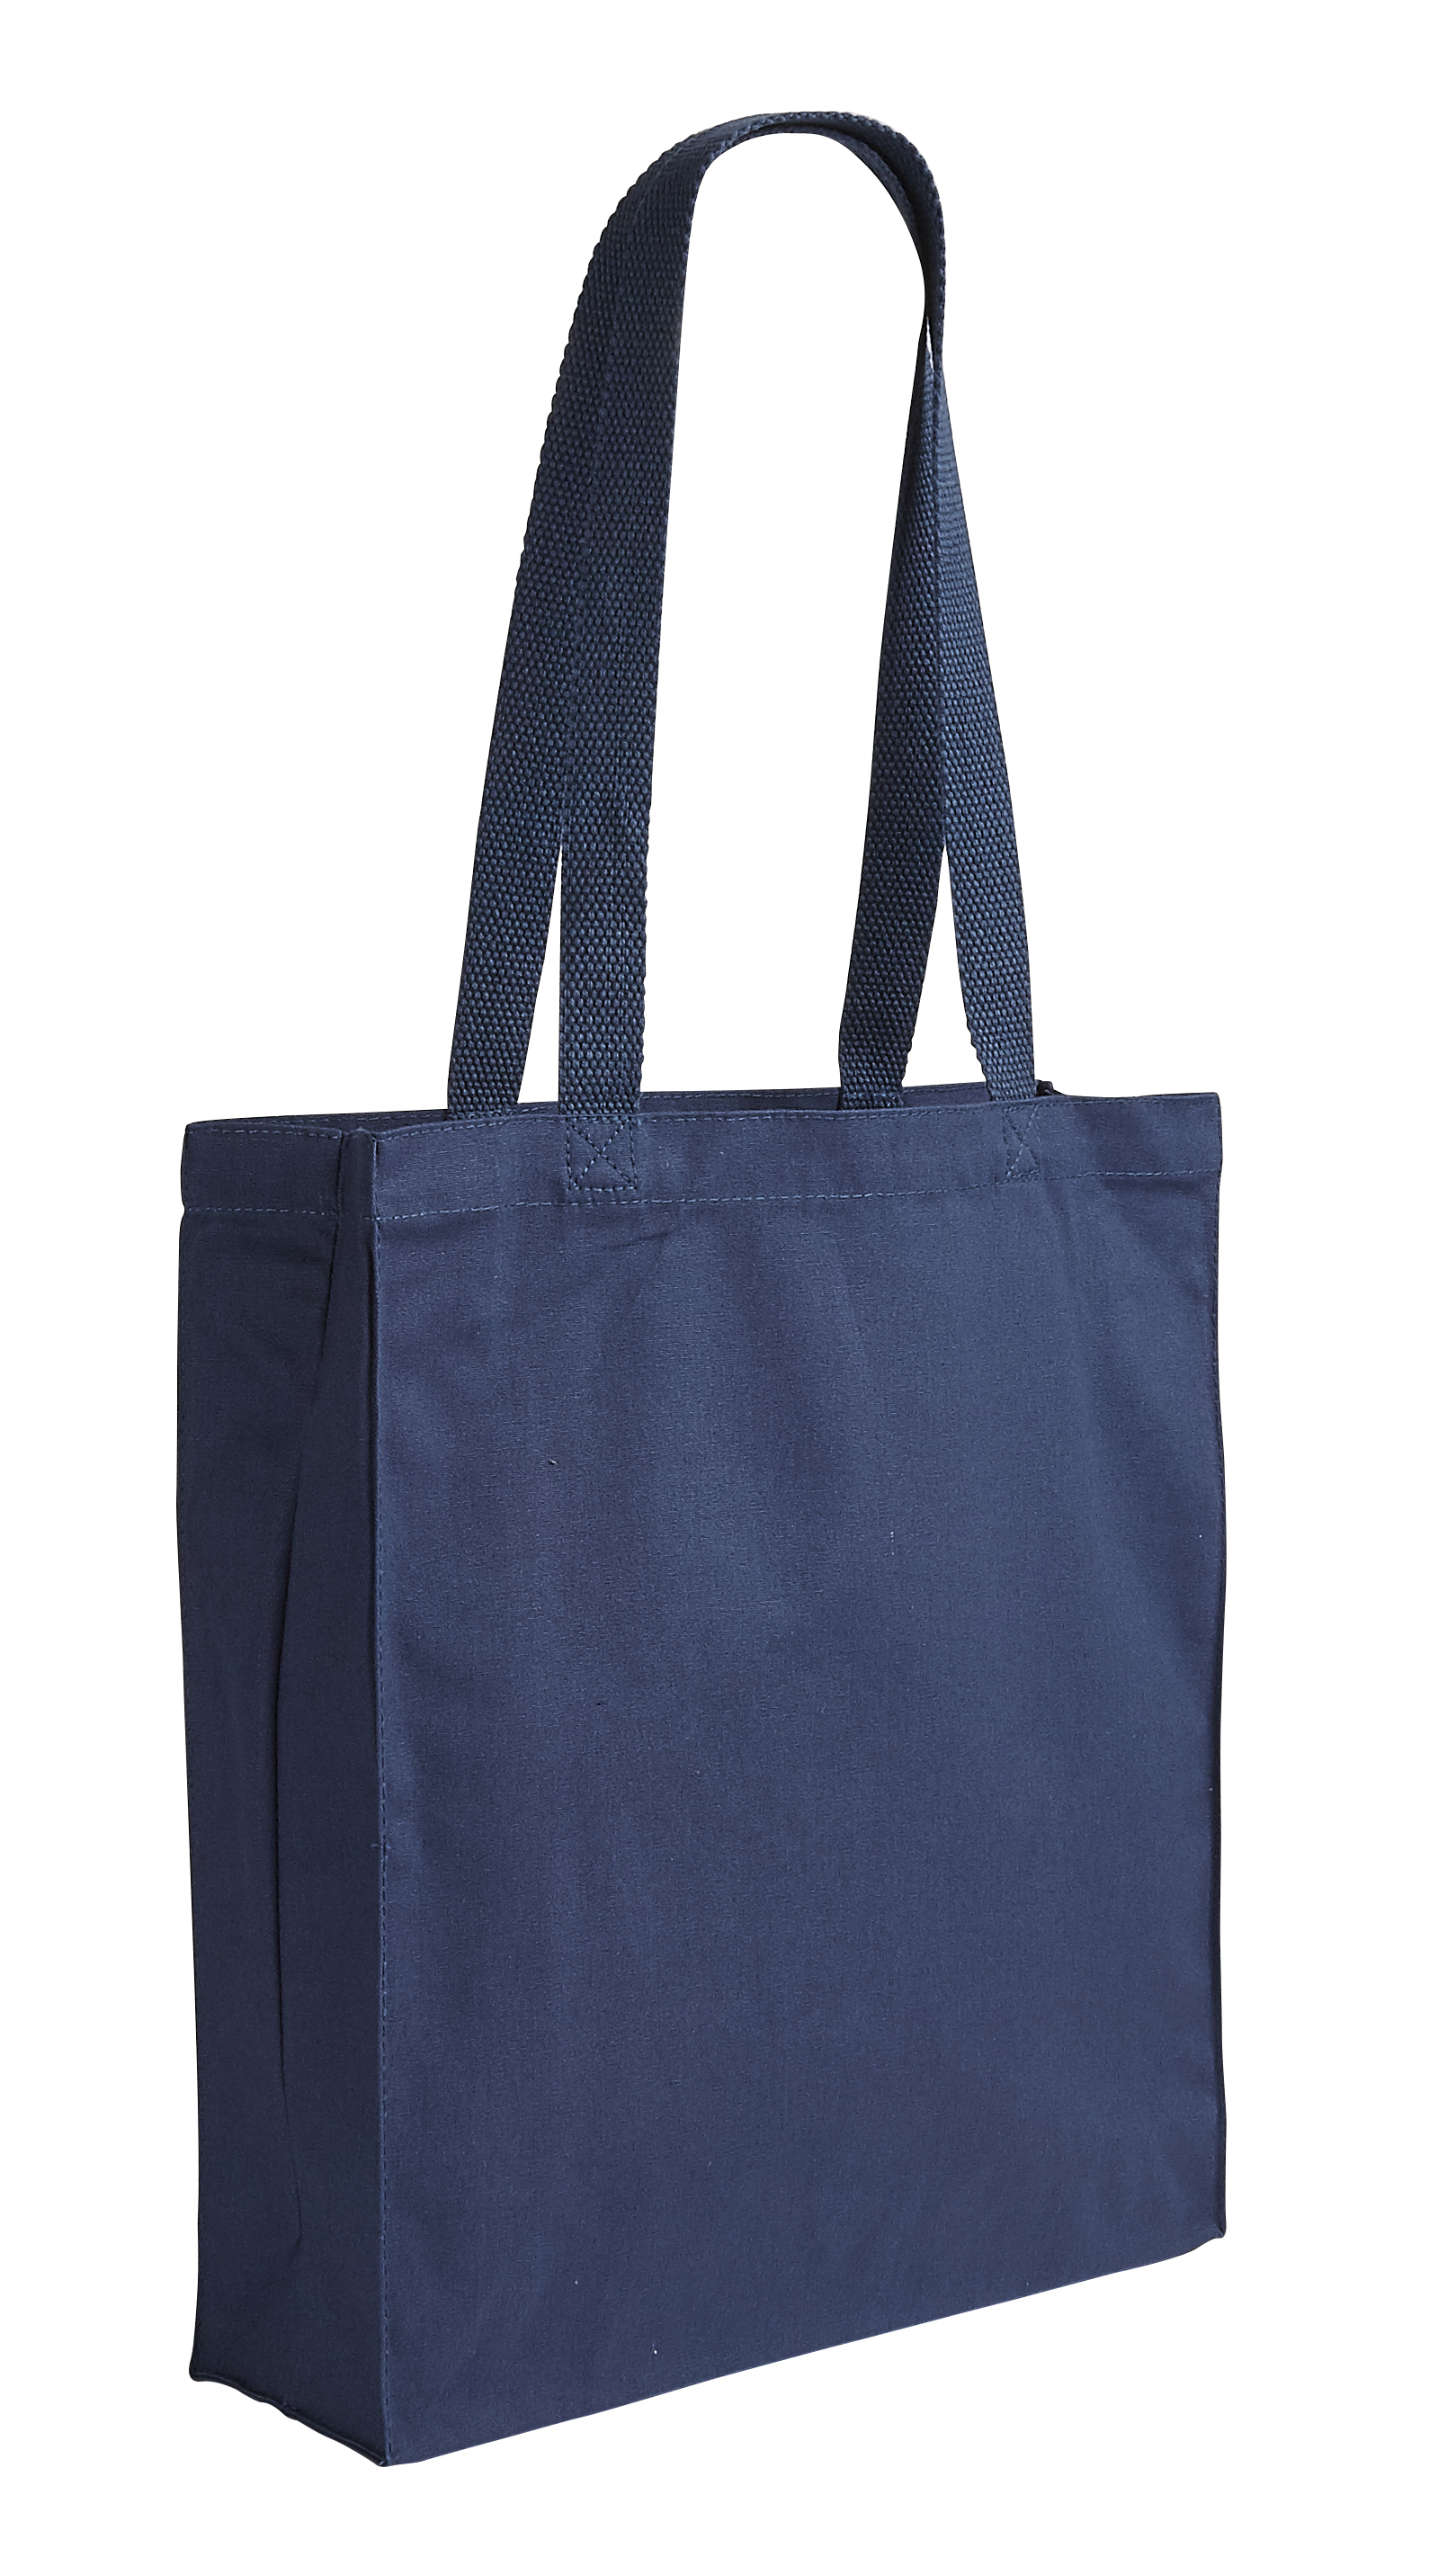 Illustrious Blue Canvas Shopper Bag